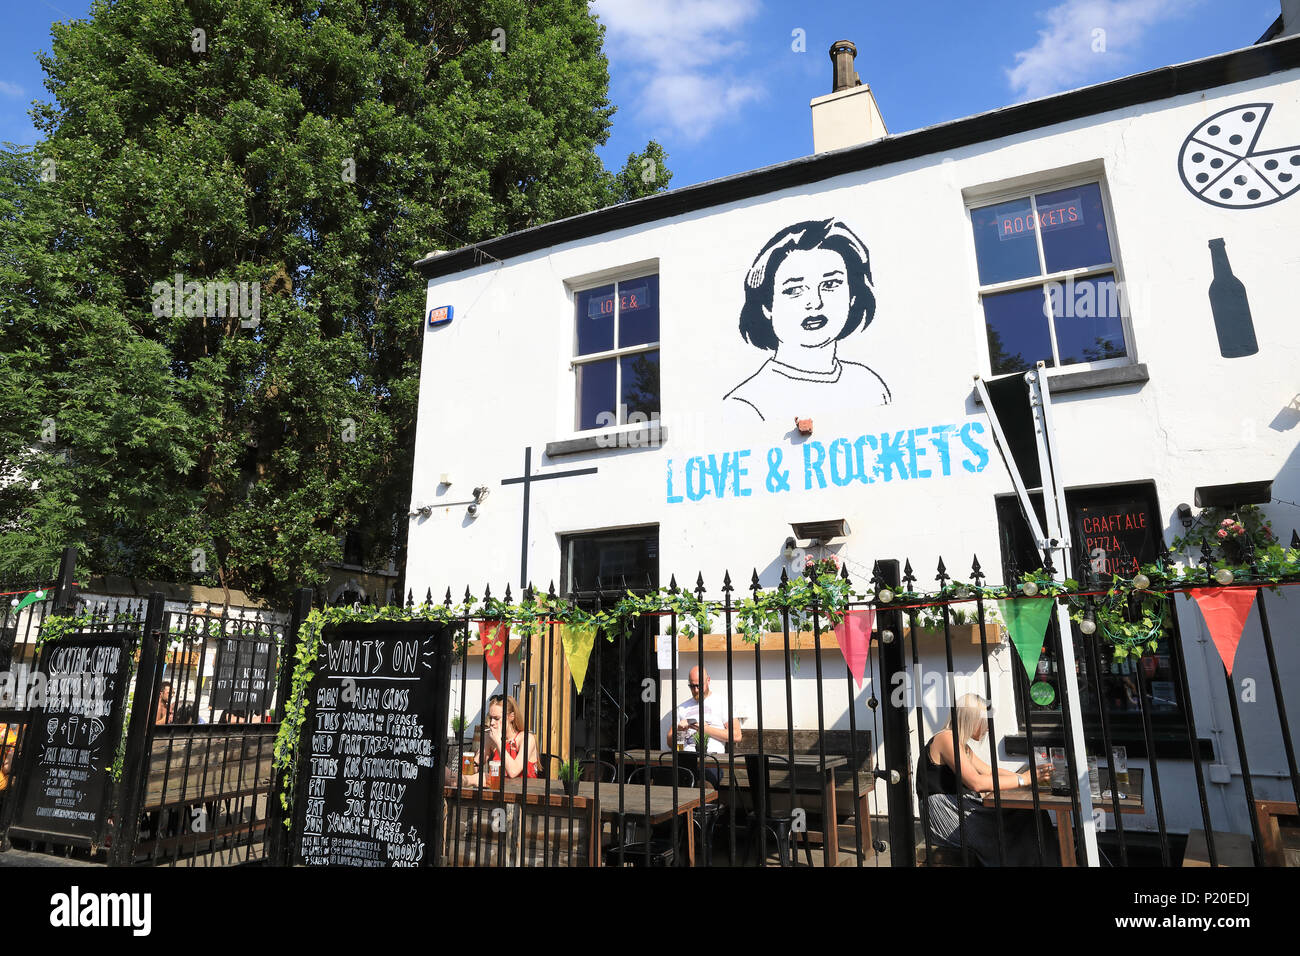 Quirky and bohemian shops, cafes and restaurants line Lark Lane off Sefton Park, in Liverpool, UK - Stock Image